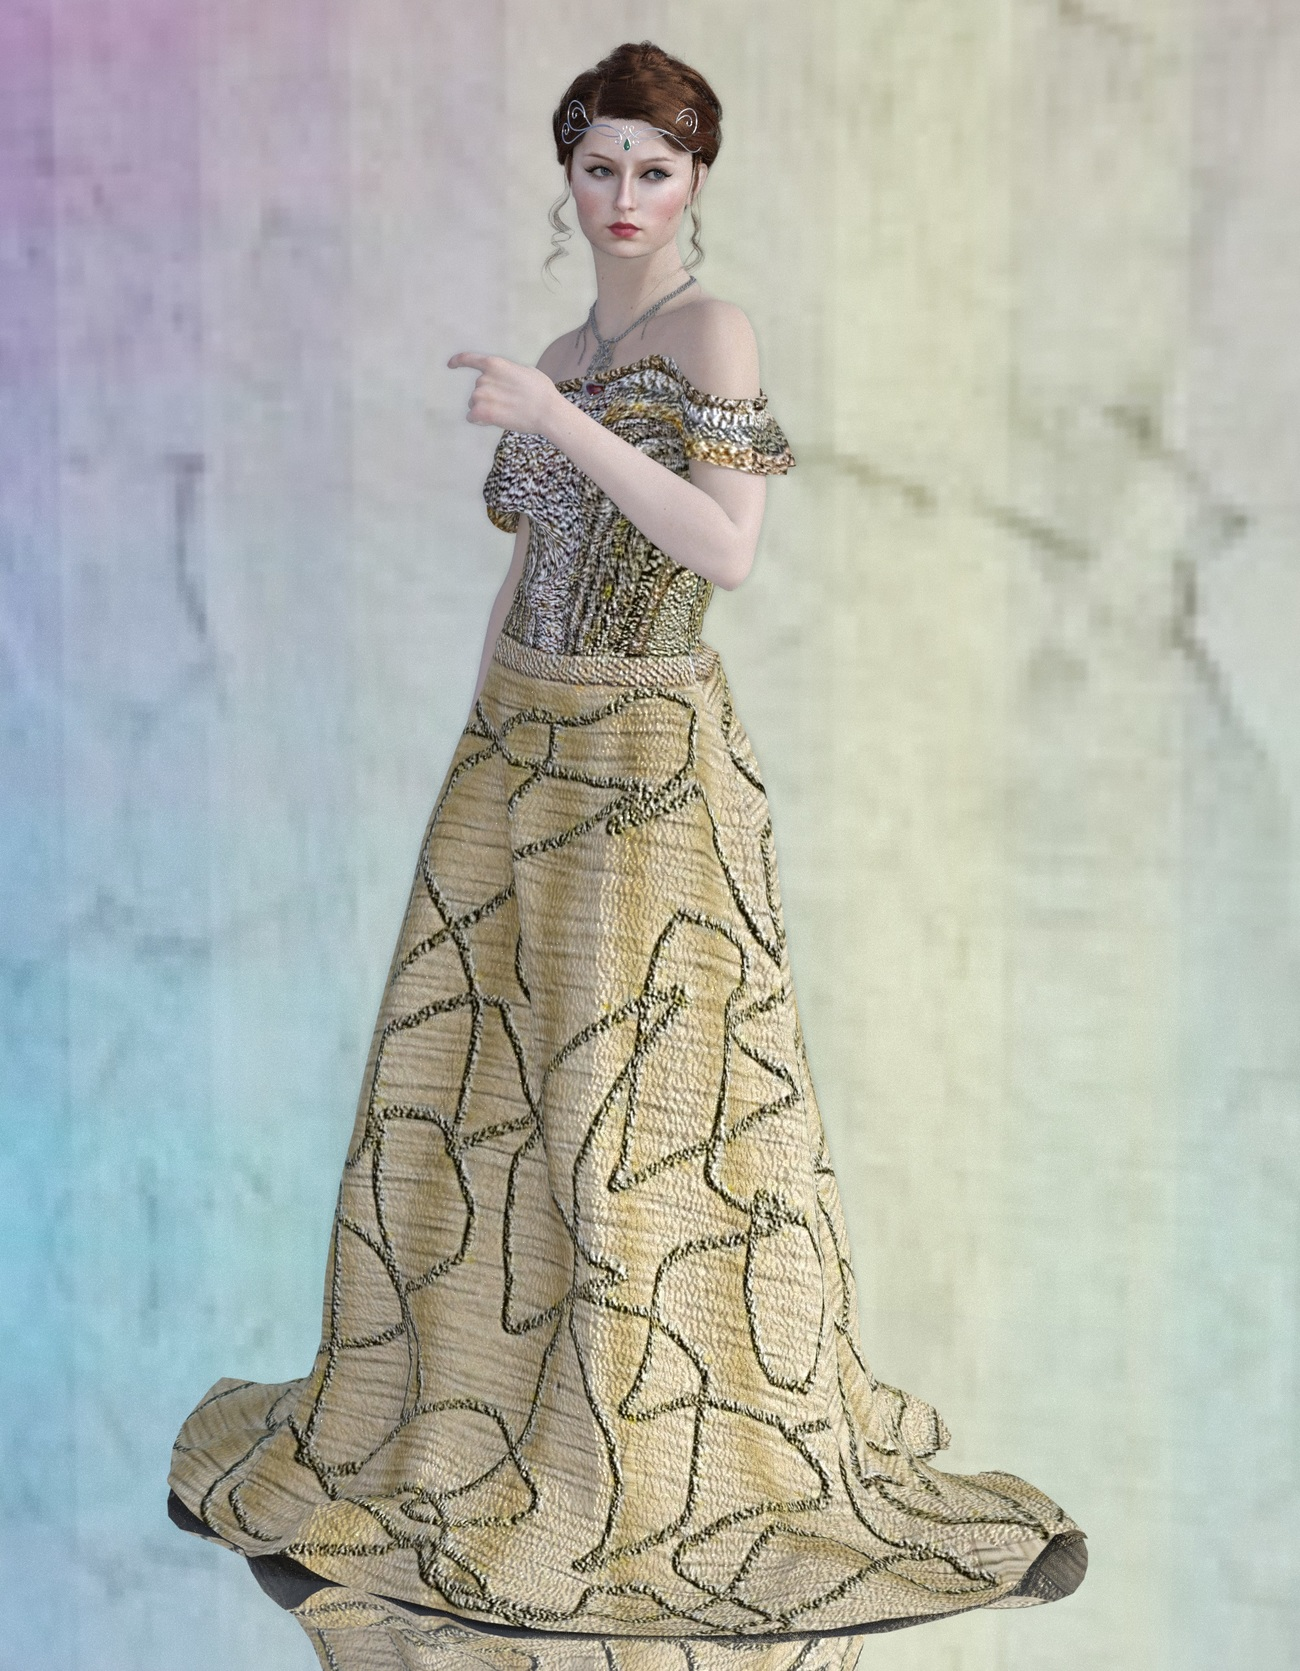 Sensea In Soiree Gown by reizibarrientos